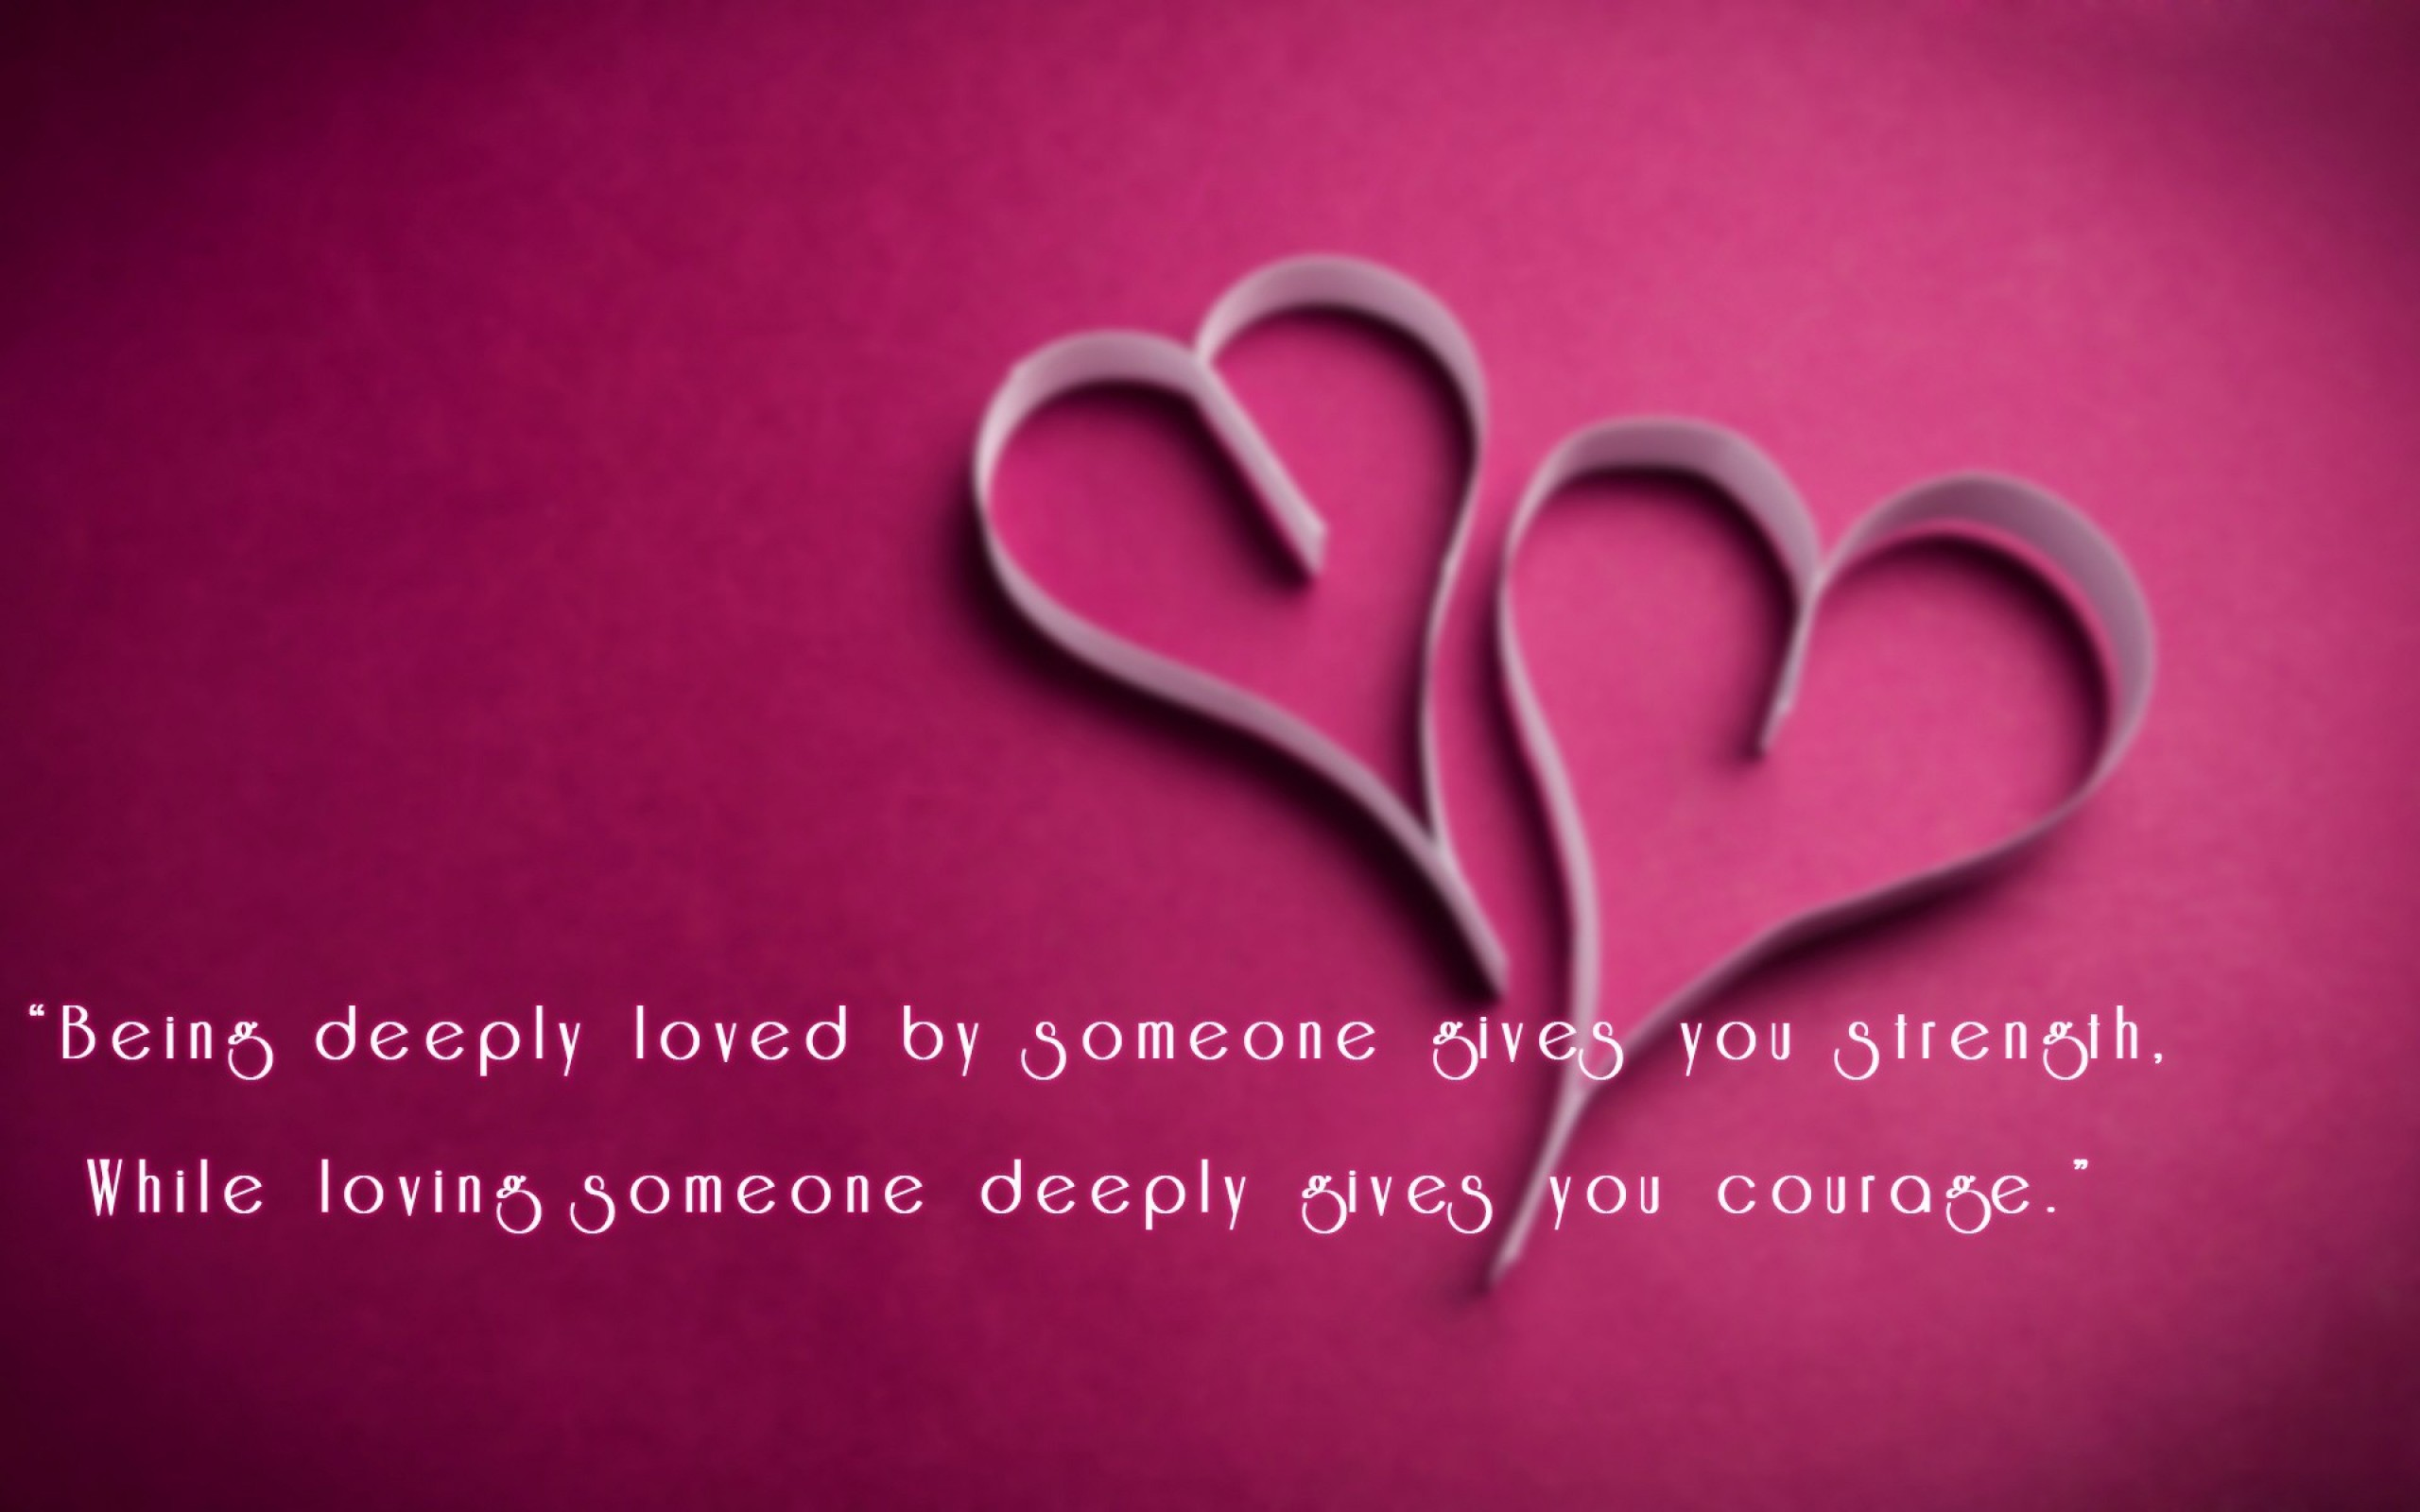 Love Quotes Wallpaper Full Screen : cute Love Quotes Wallpapers (58+ images)